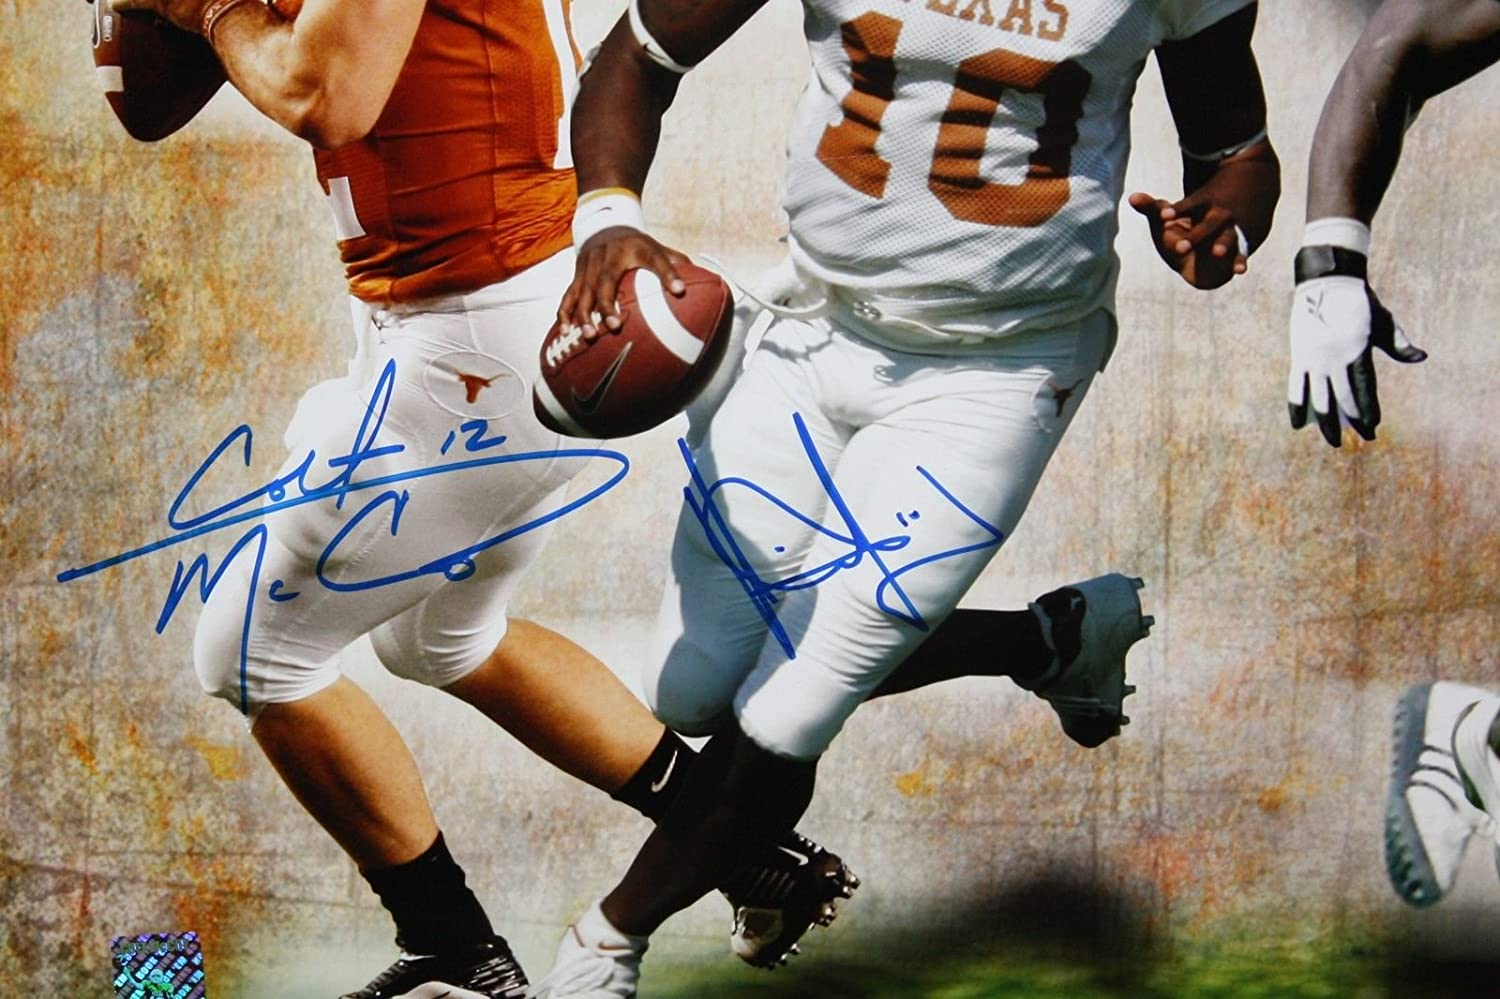 J Campbell McCoy Williams /& Young Autographed 16x20 Texas Longhorns Photo